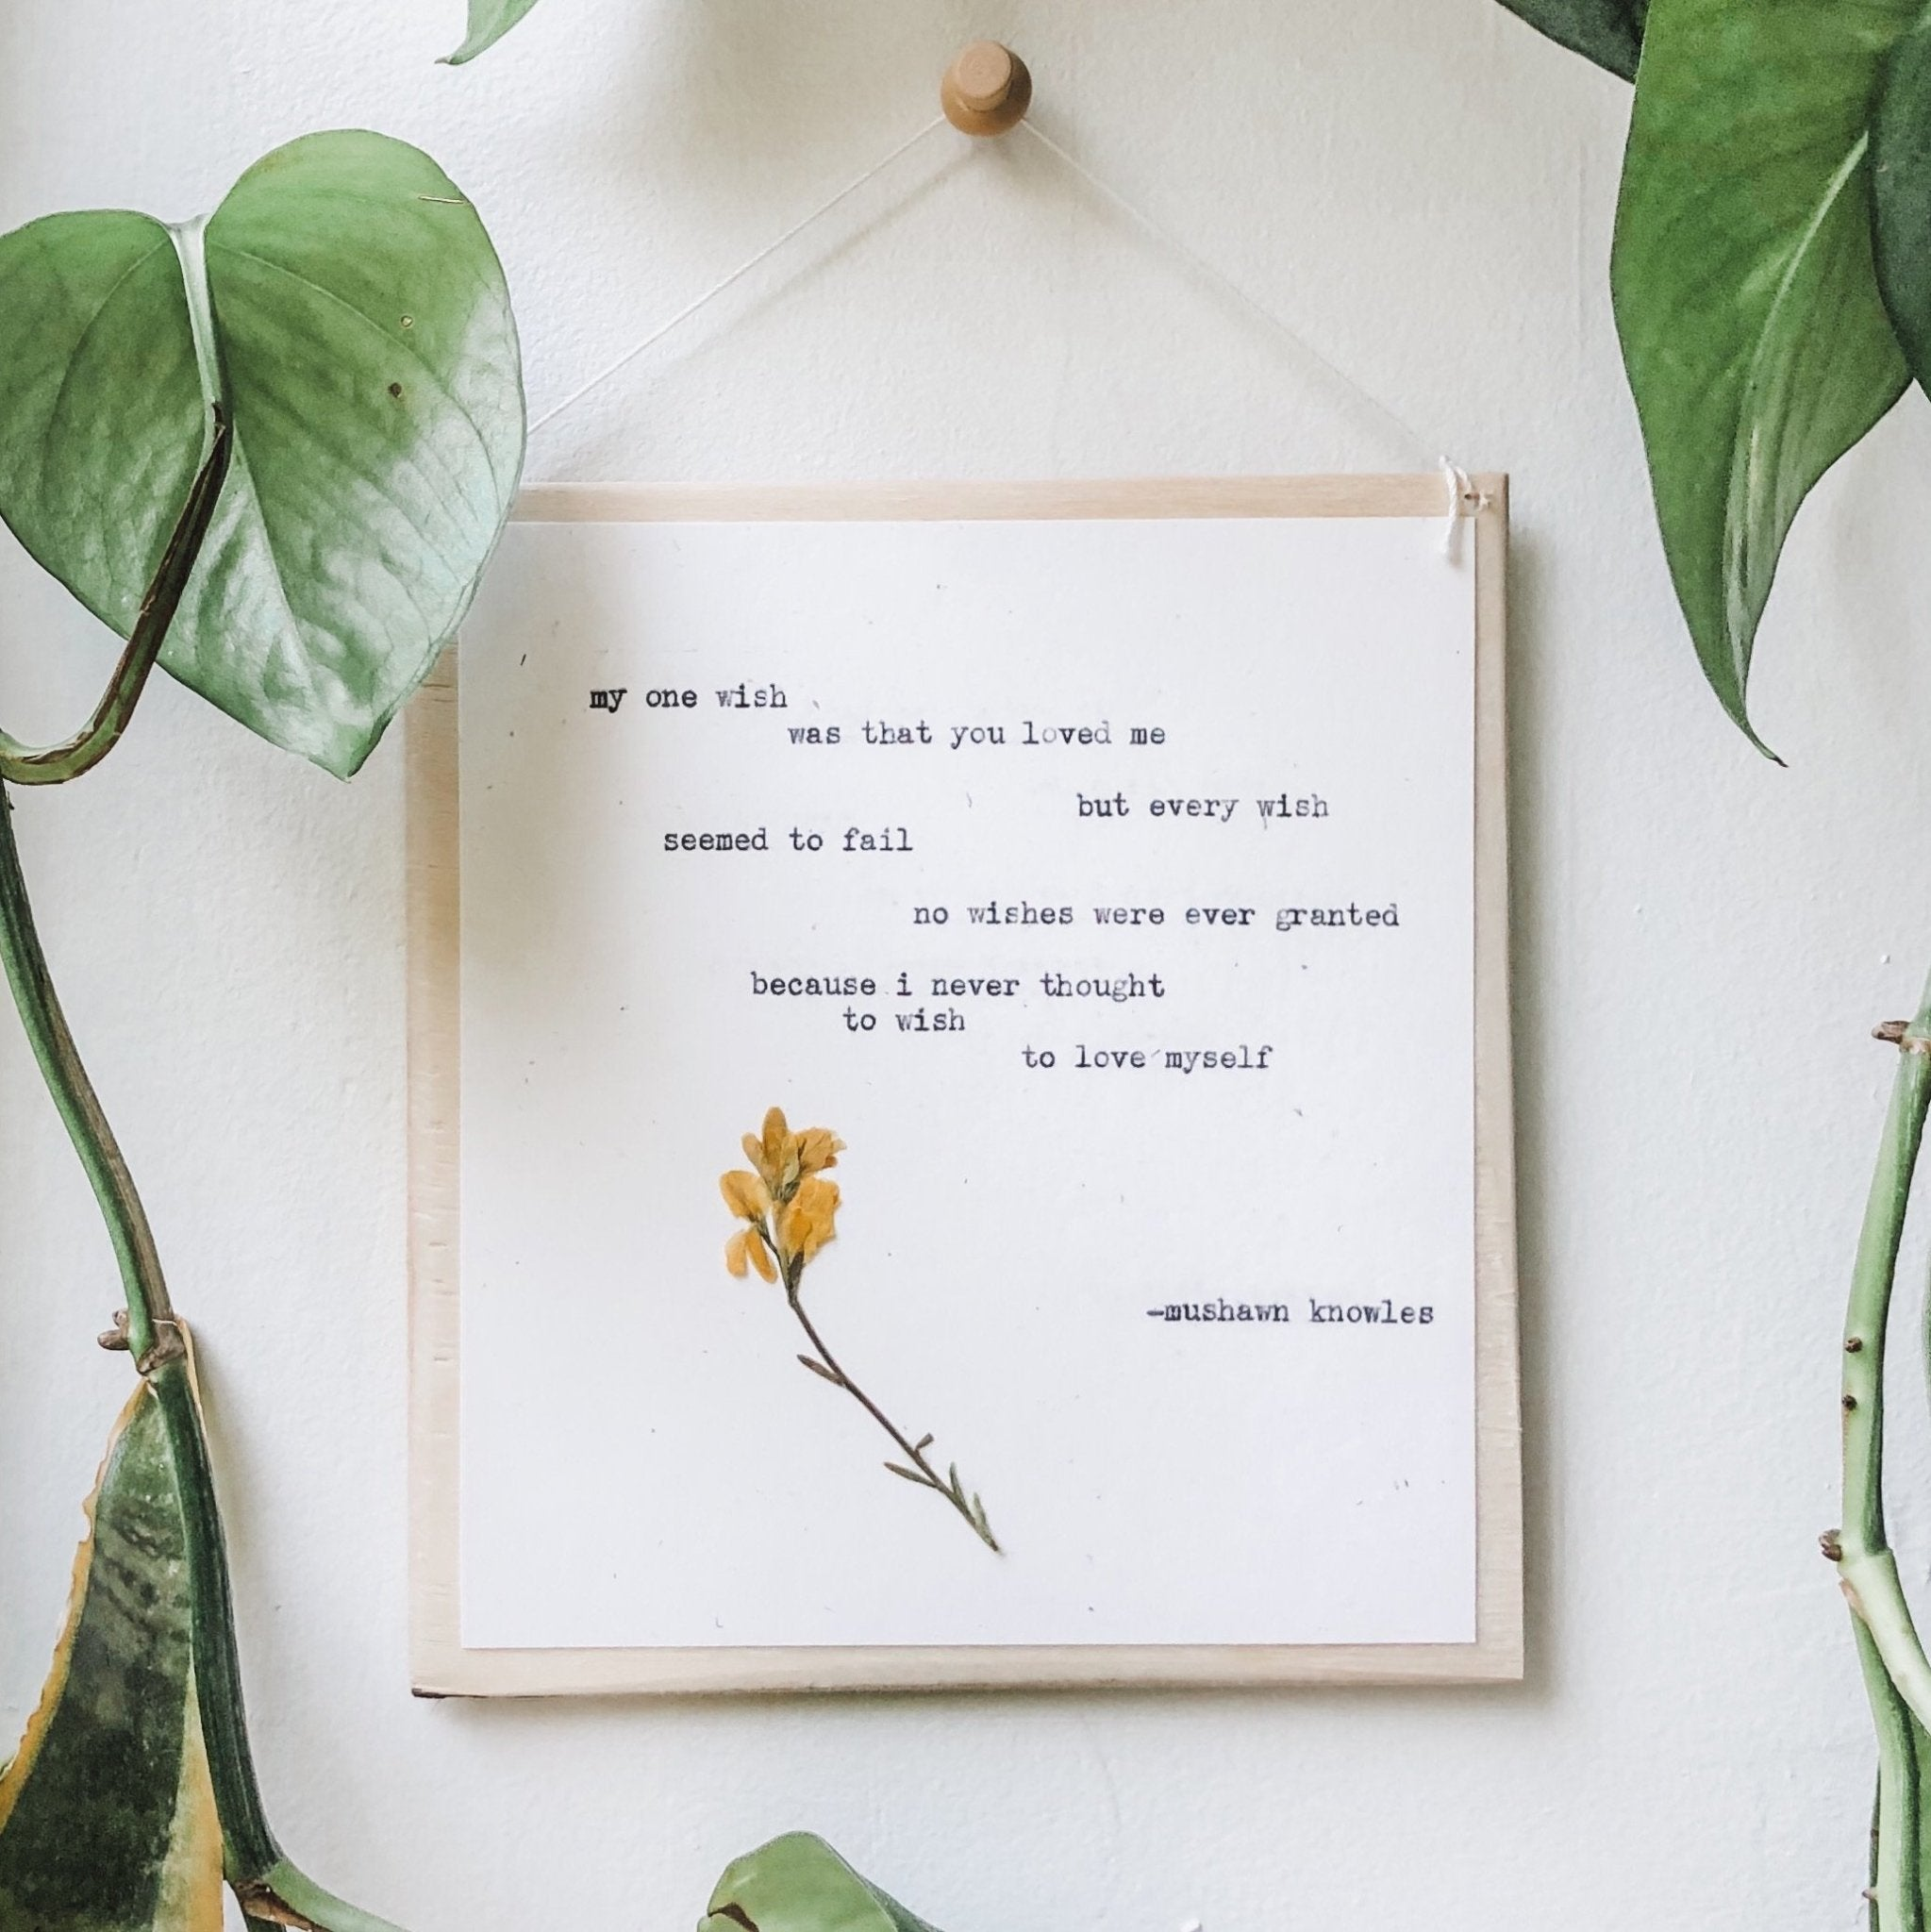 mushawn knowles, my one wish quote typed in typewriter font on white paper, mounted on birch wood and paired with a pressed flower. handmade décor by flora & phrase